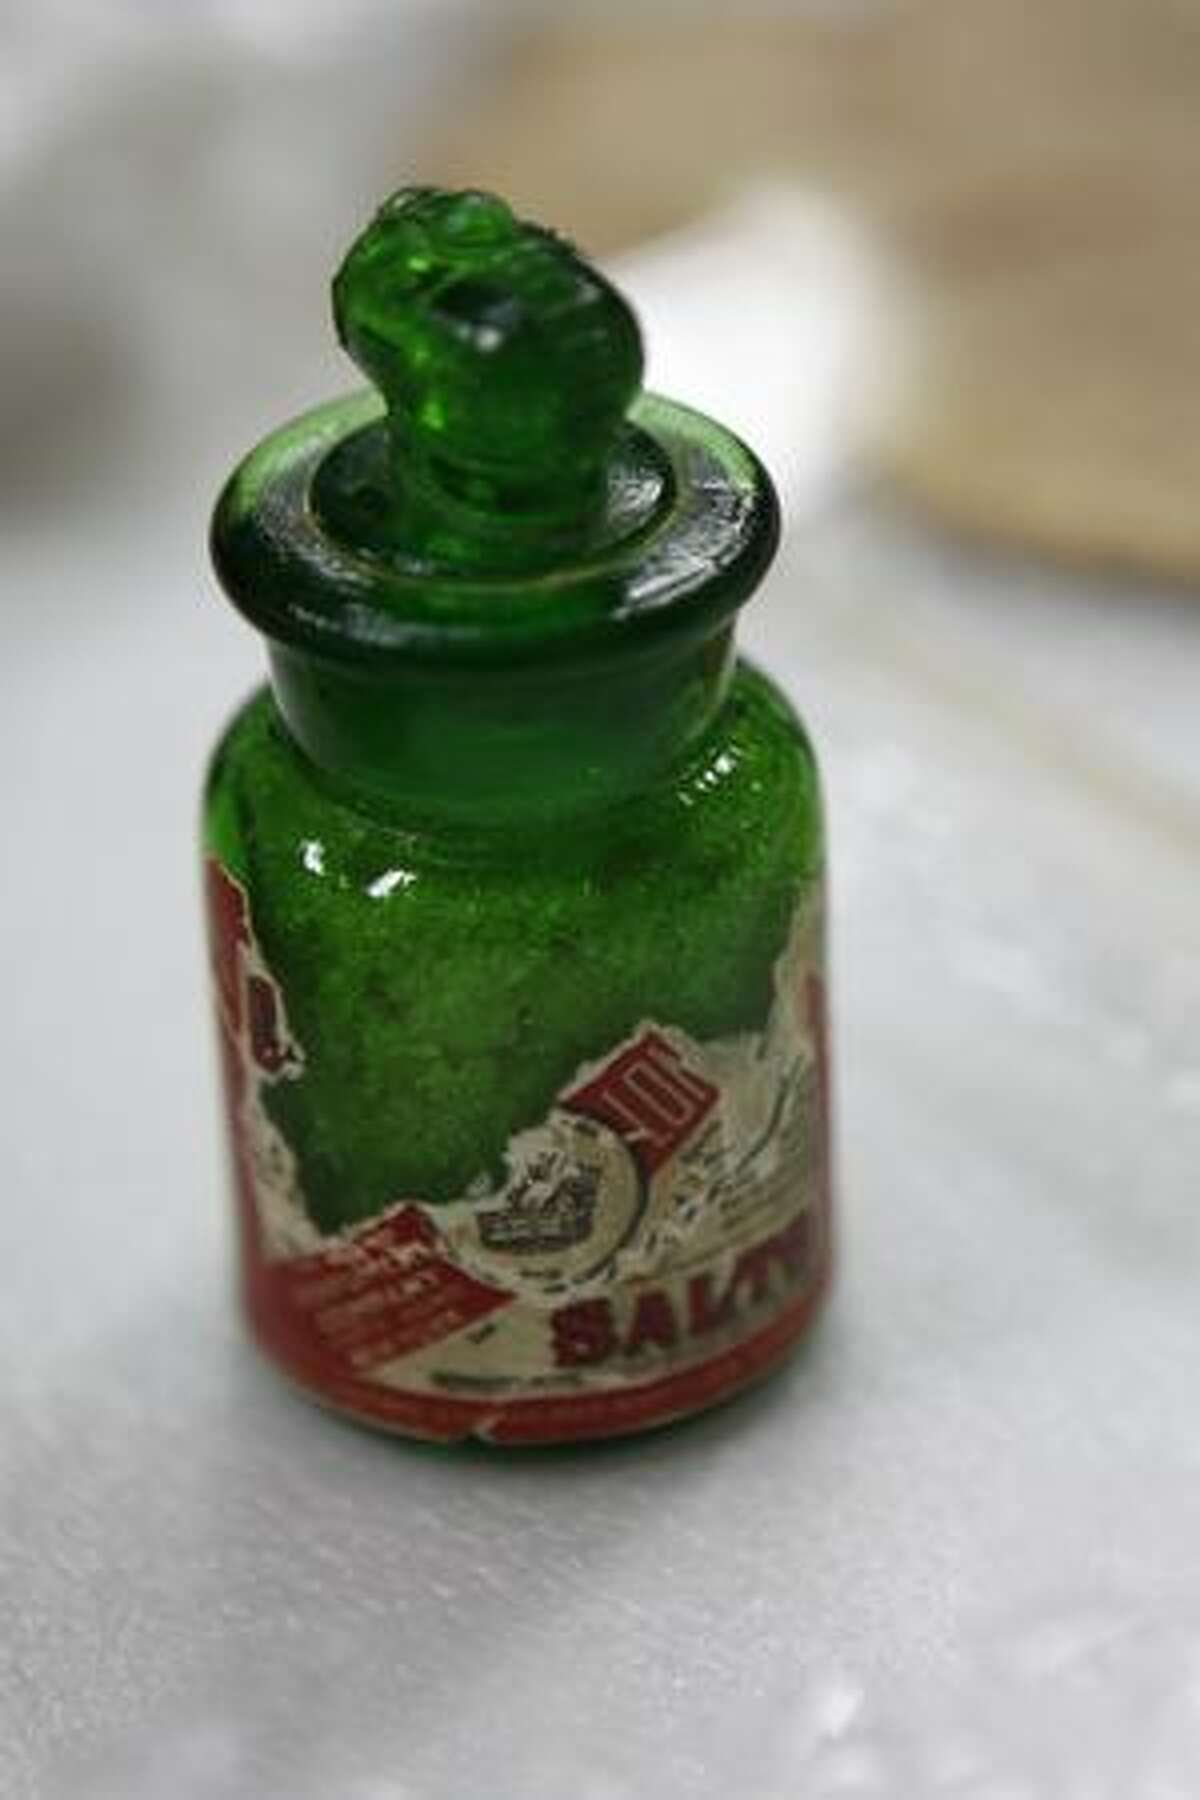 Earhart's smelling salts are part of the new exhibit at The Museum of flight. The exhibit opens Ocober 24, 2009.